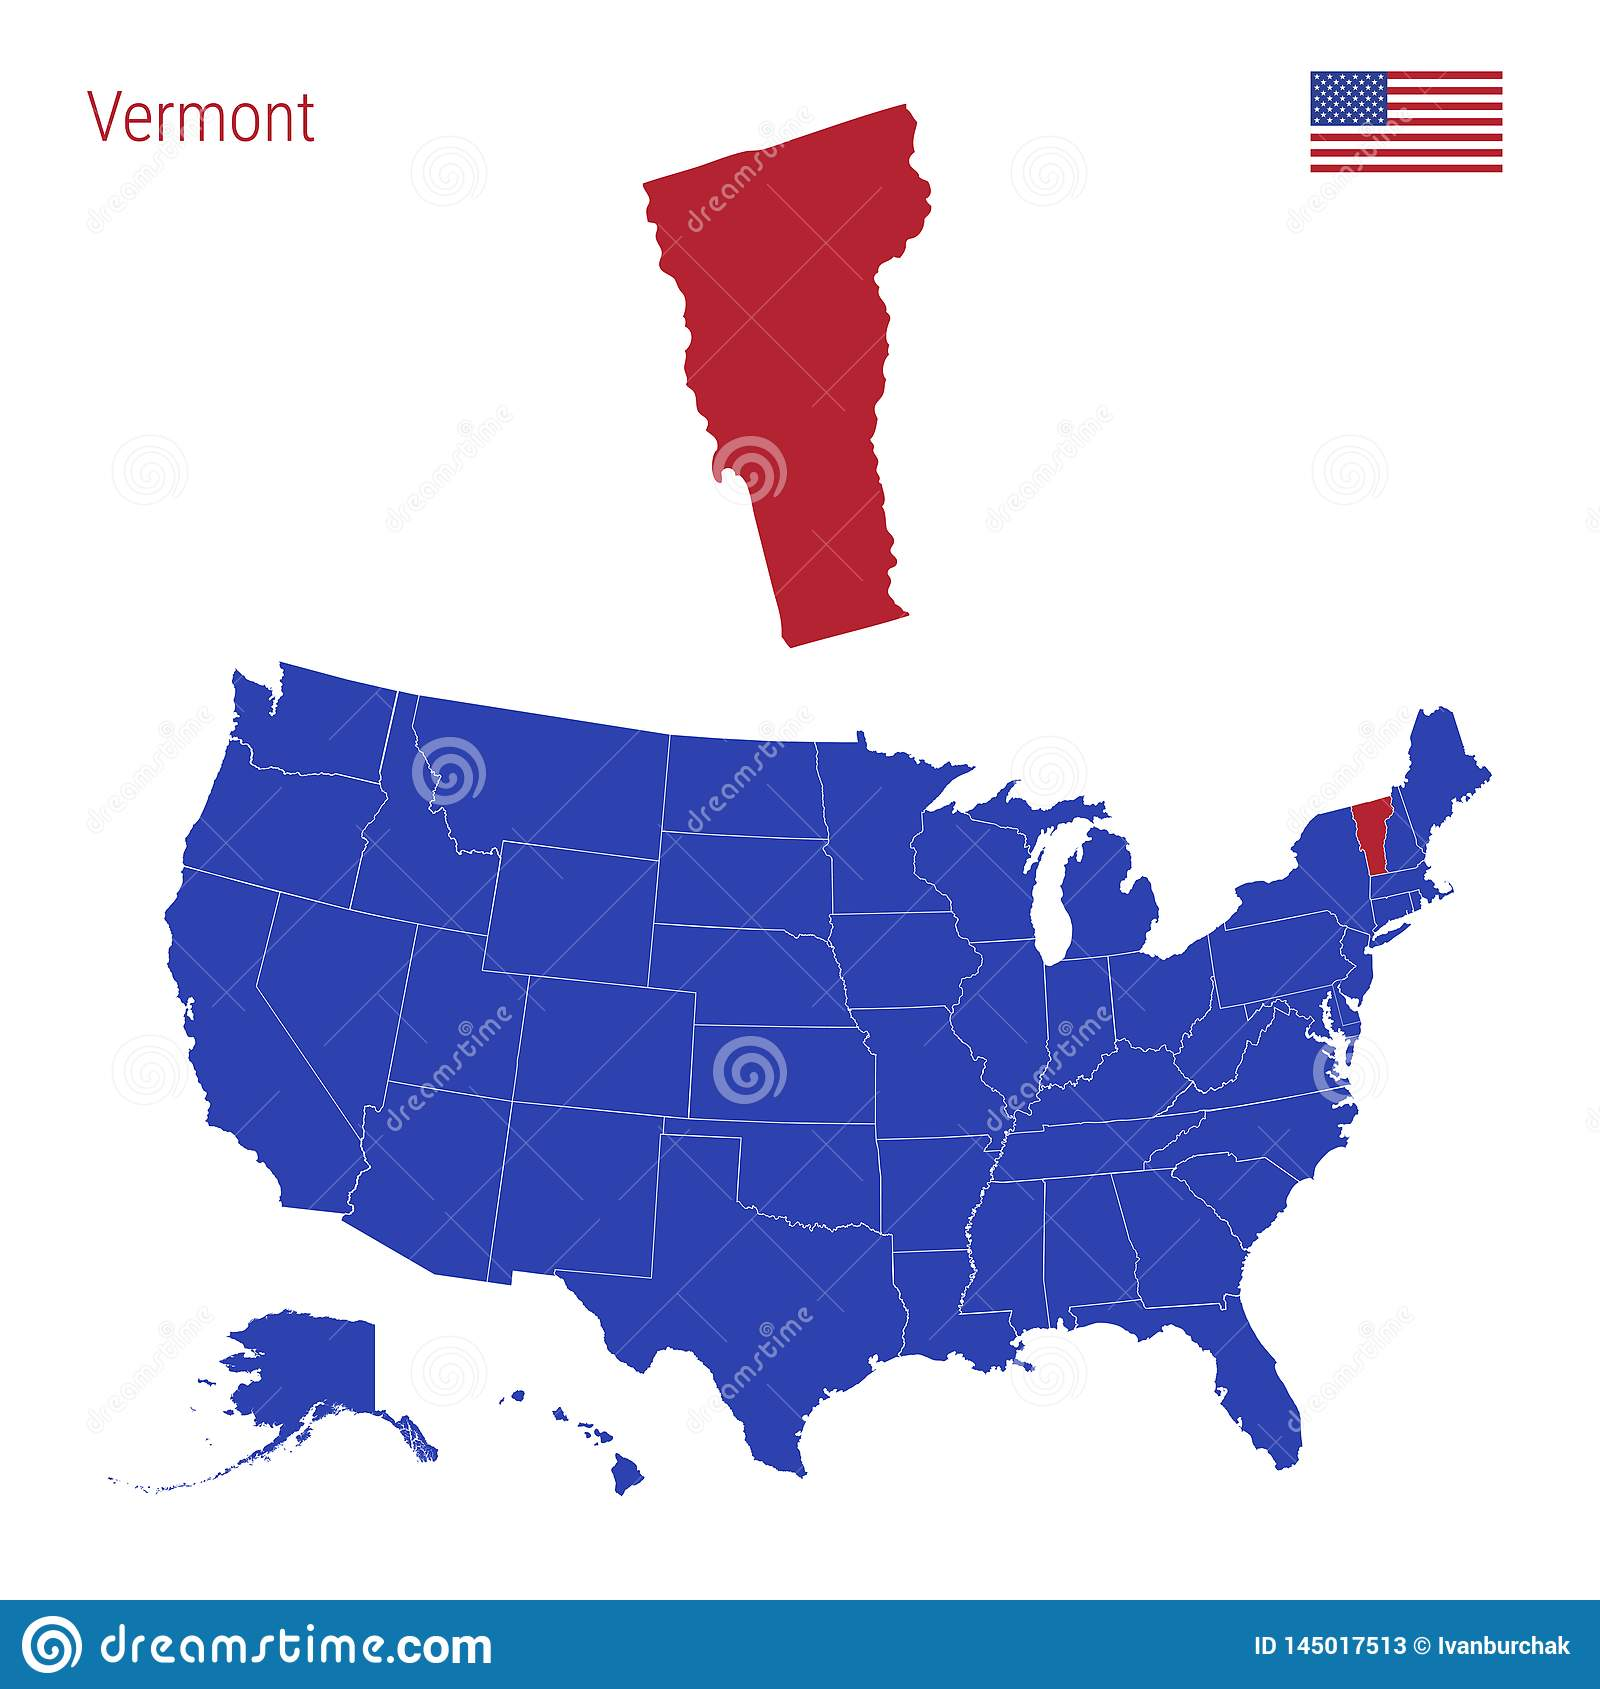 It borders canada (québec province) to the north. The State Of Vermont Is Highlighted In Red Vector Map Of The United States Divided Into Separate States Stock Illustration Illustration Of Infographic Flat 145017513